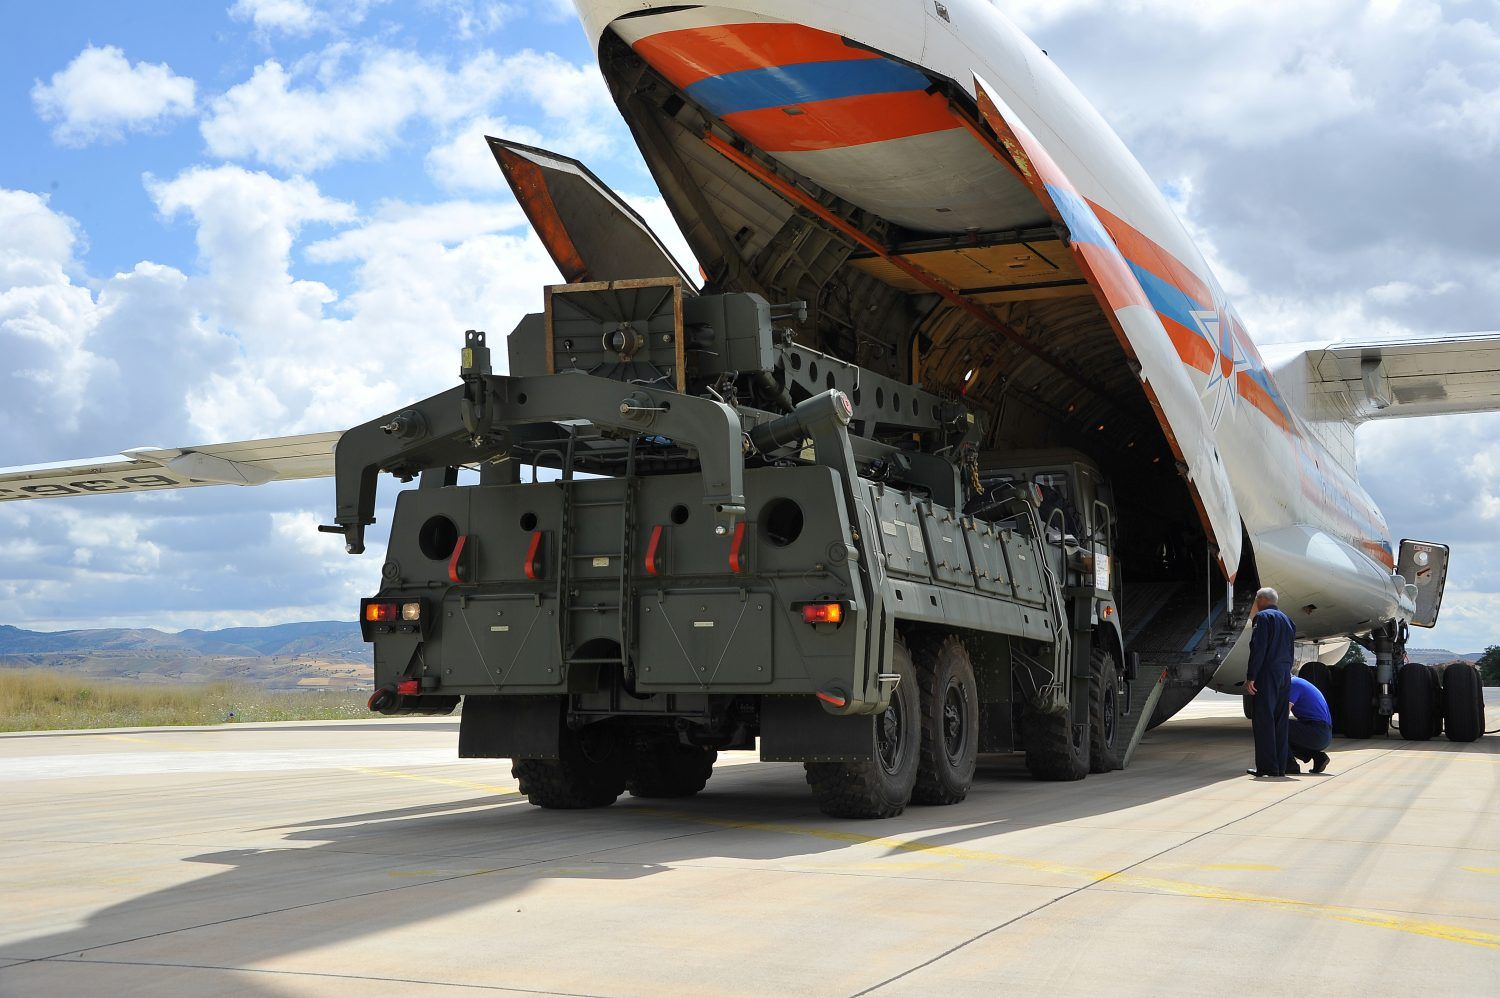 FILE PHOTO: First parts of a Russian S-400 missile defense system are unloaded from a Russian plane at Murted Airport, known as Akinci Air Base, near Ankara, Turkey, July 12, 2019. Turkish Military/Turkish Defence Ministry/Handout via REUTERS/File Photo